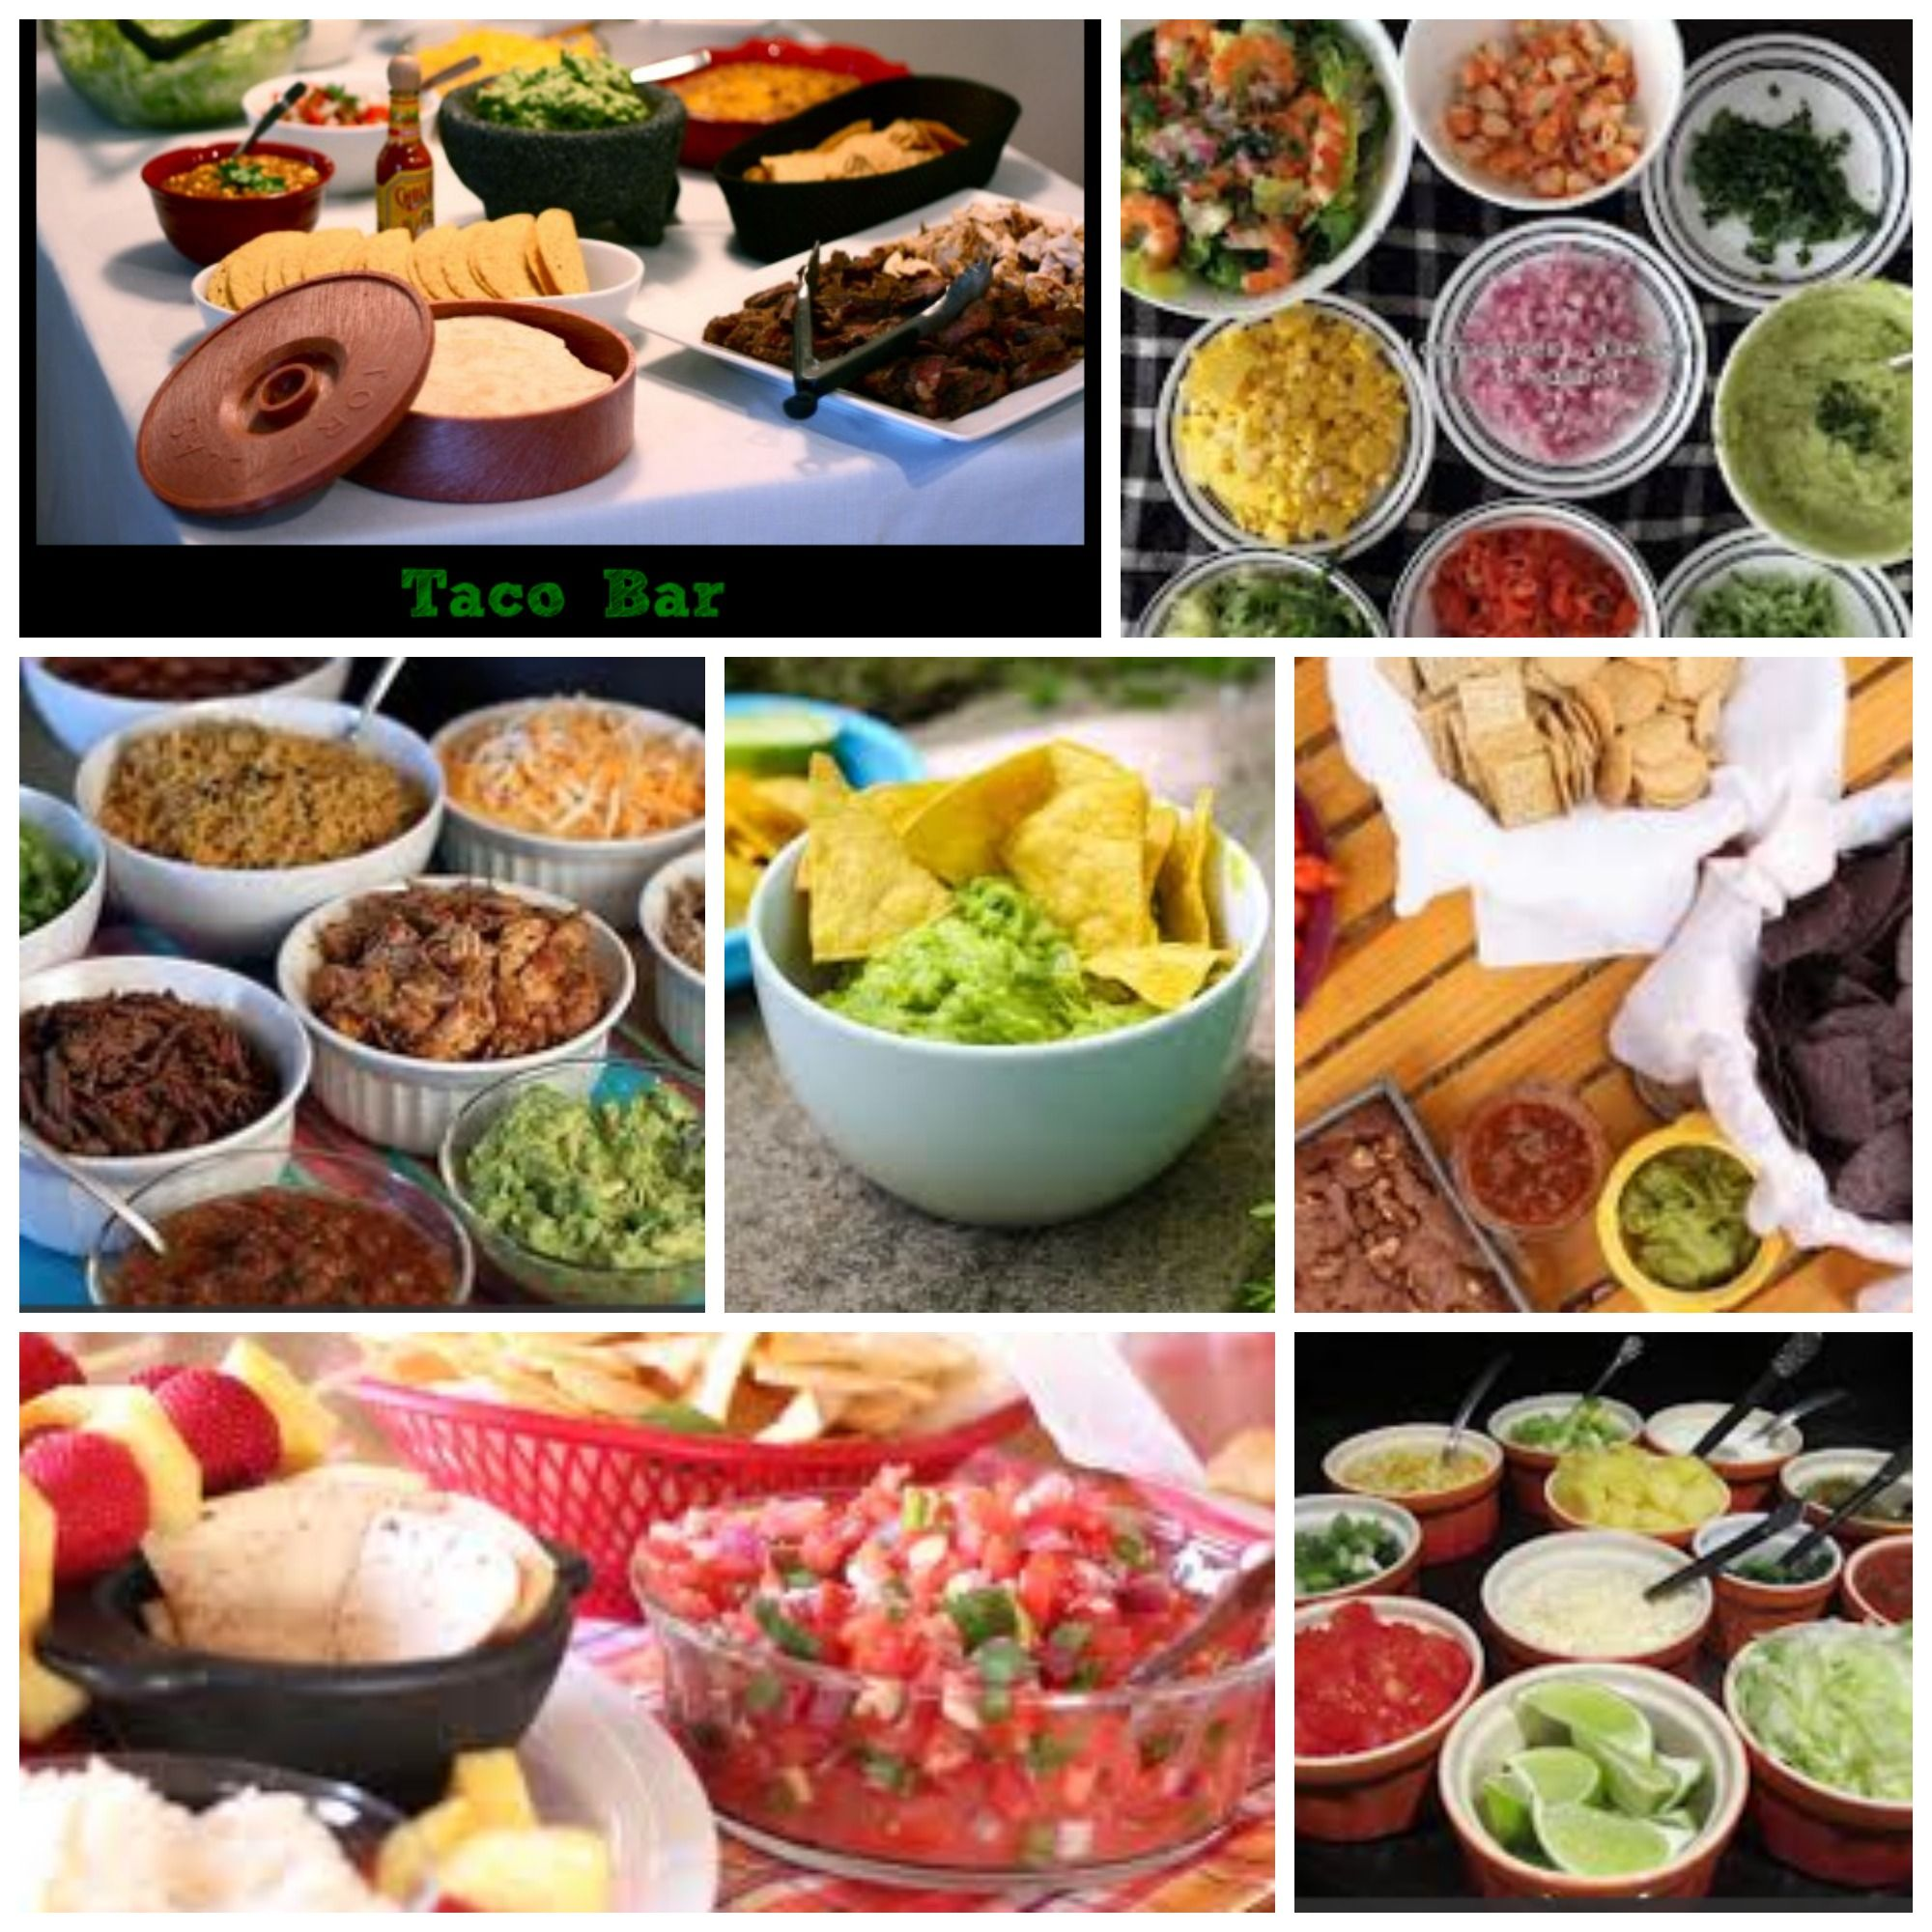 Taco bar ideas to feed groups of 10 christmas for Food bar ideas for a party